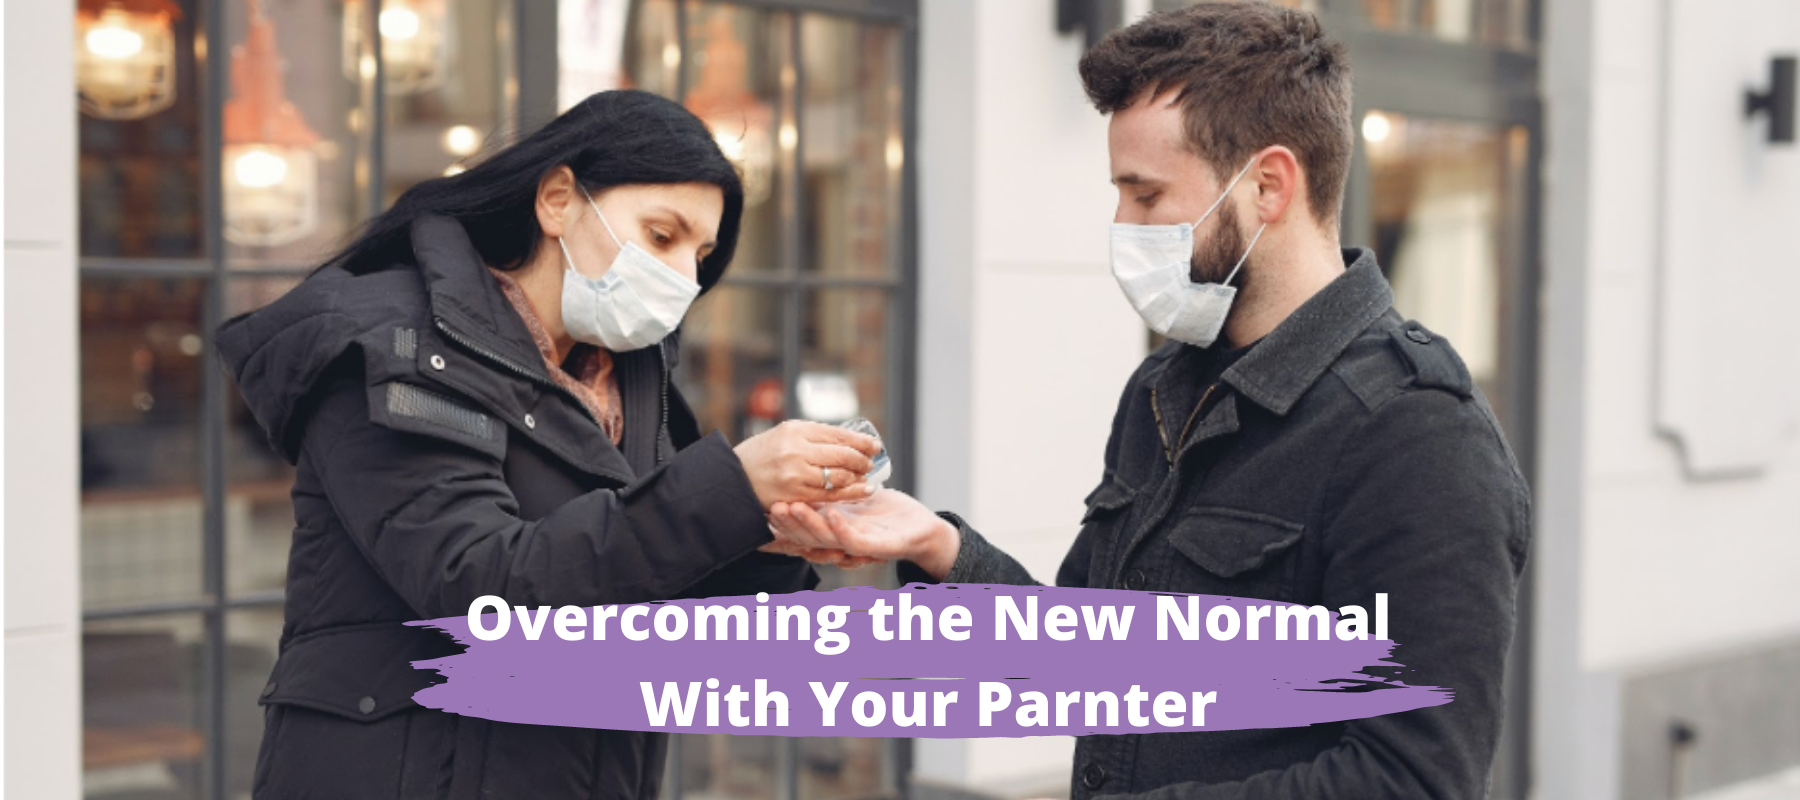 OVERCOMING THE NEW NORMAL WITH YOUR PARTNER